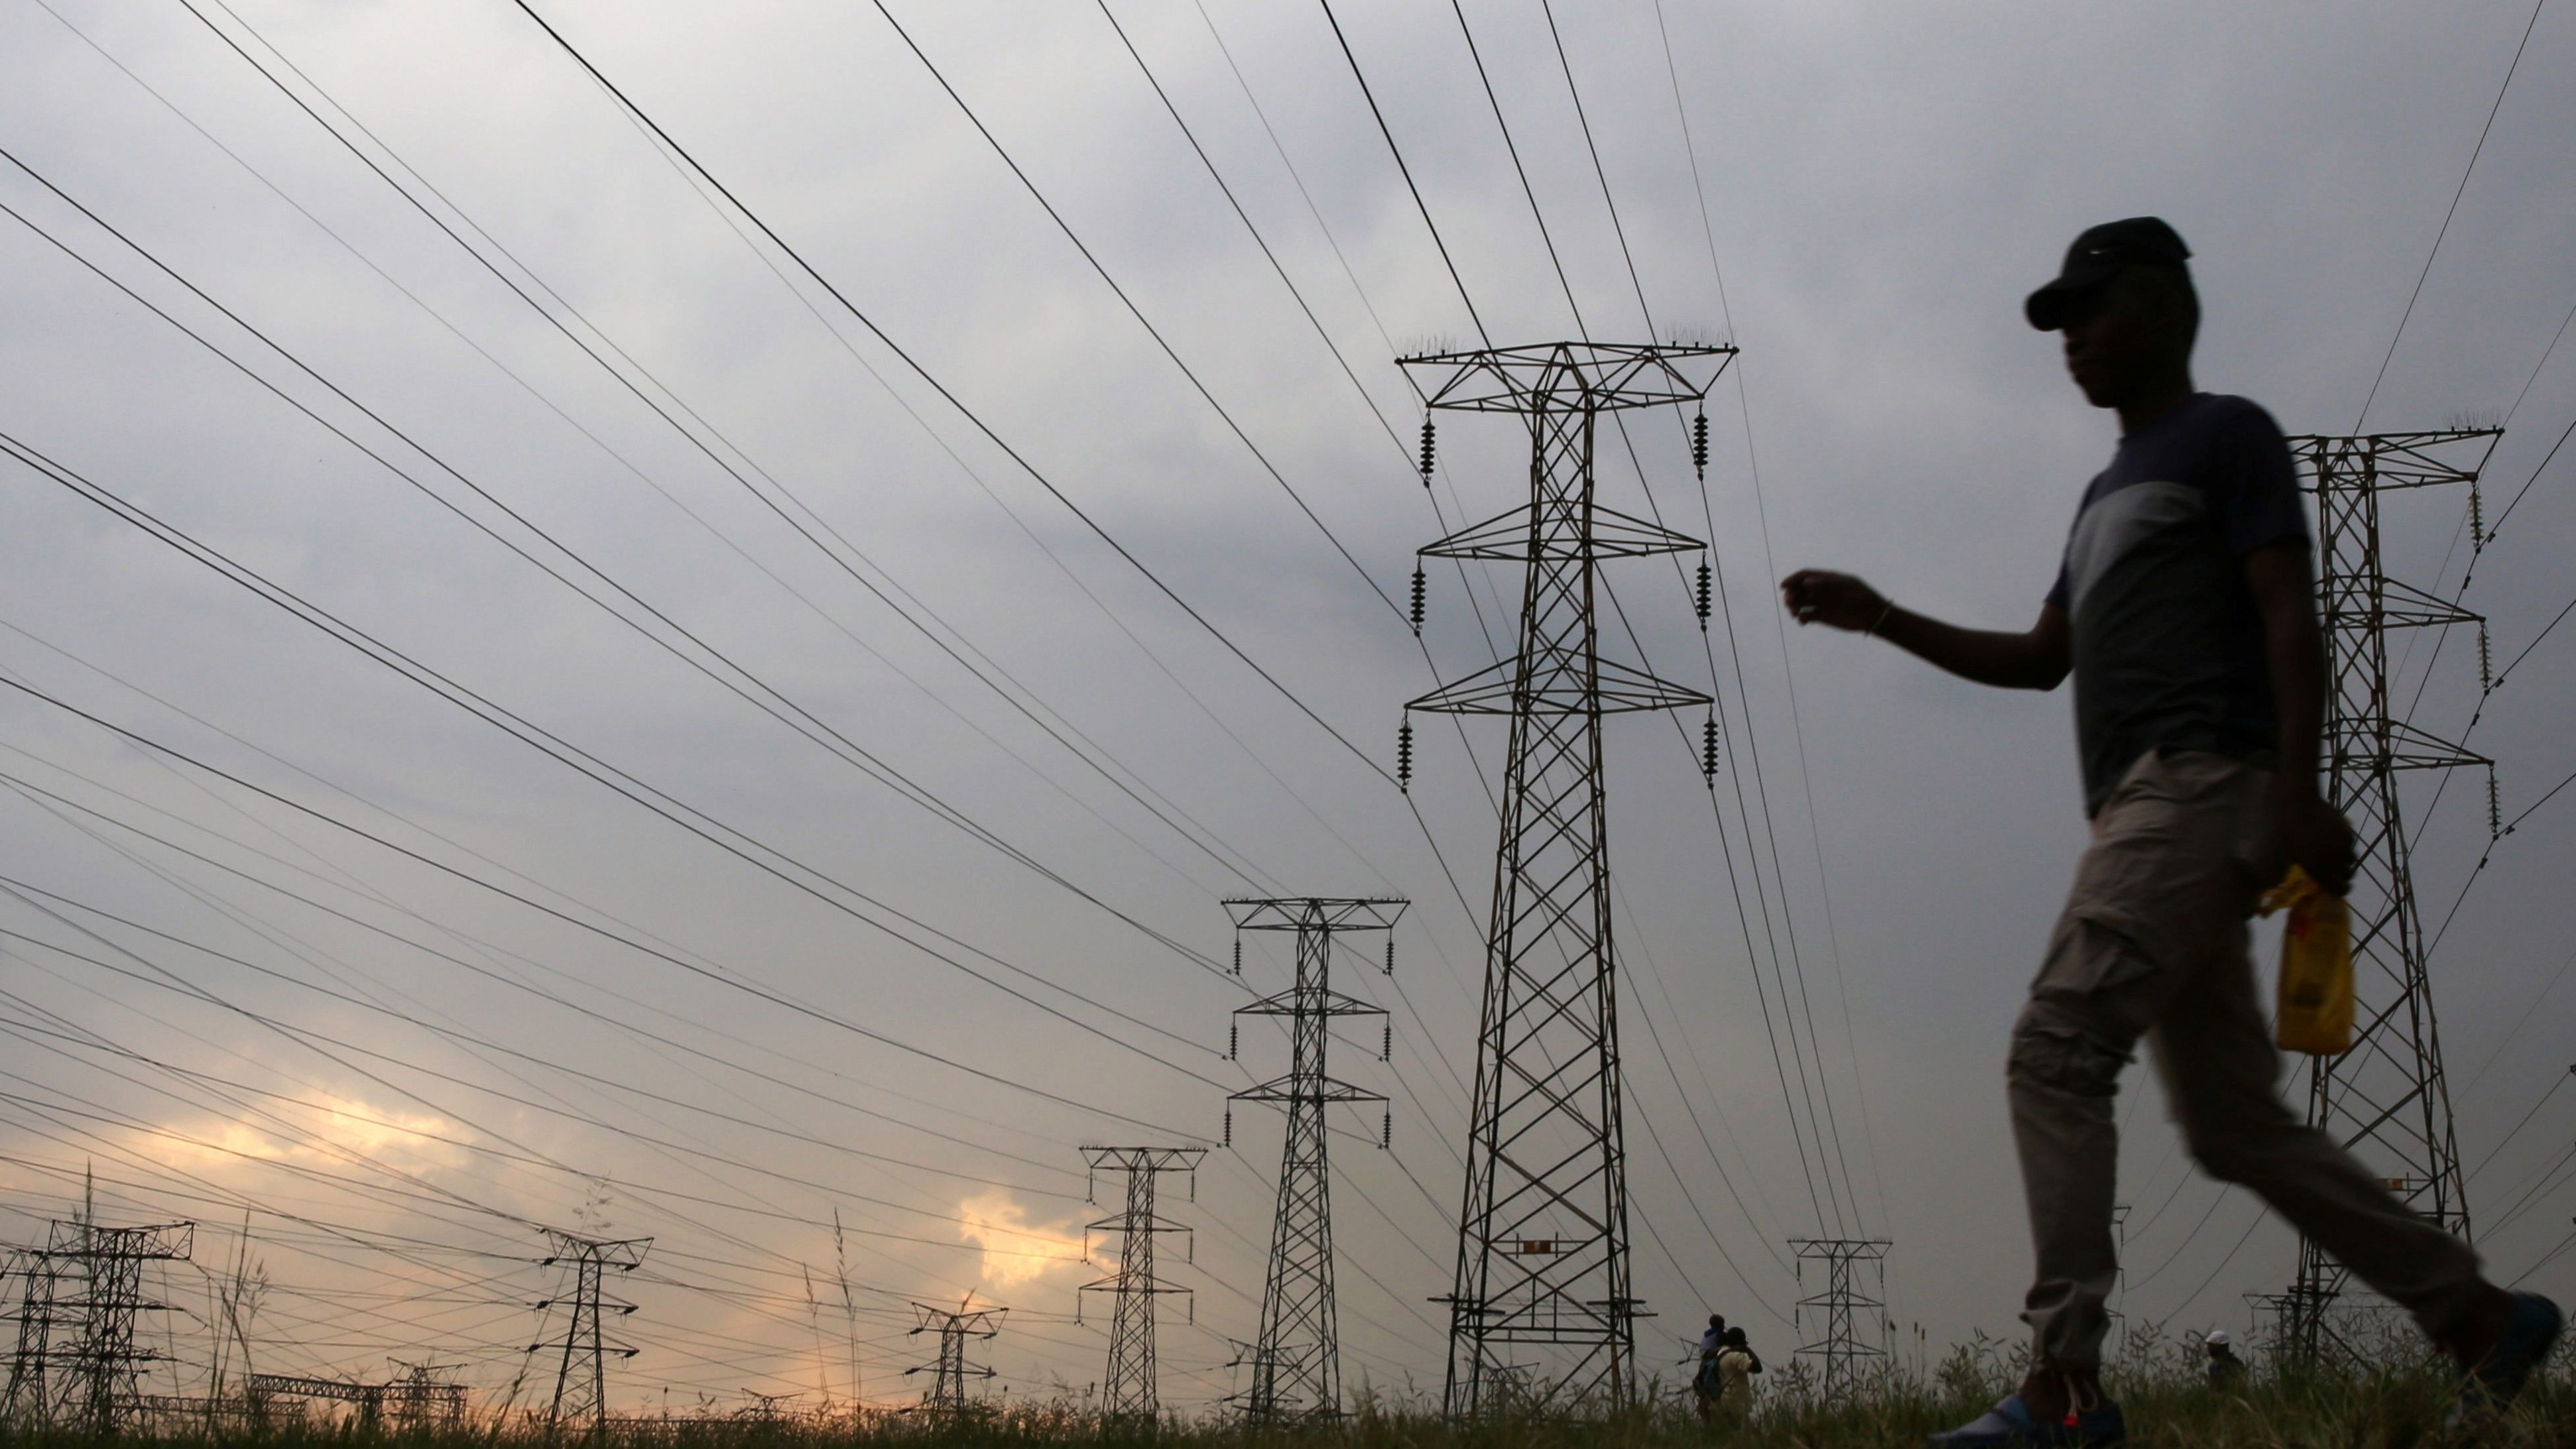 A man walks past electricity pylons in Soweto, South Africa.